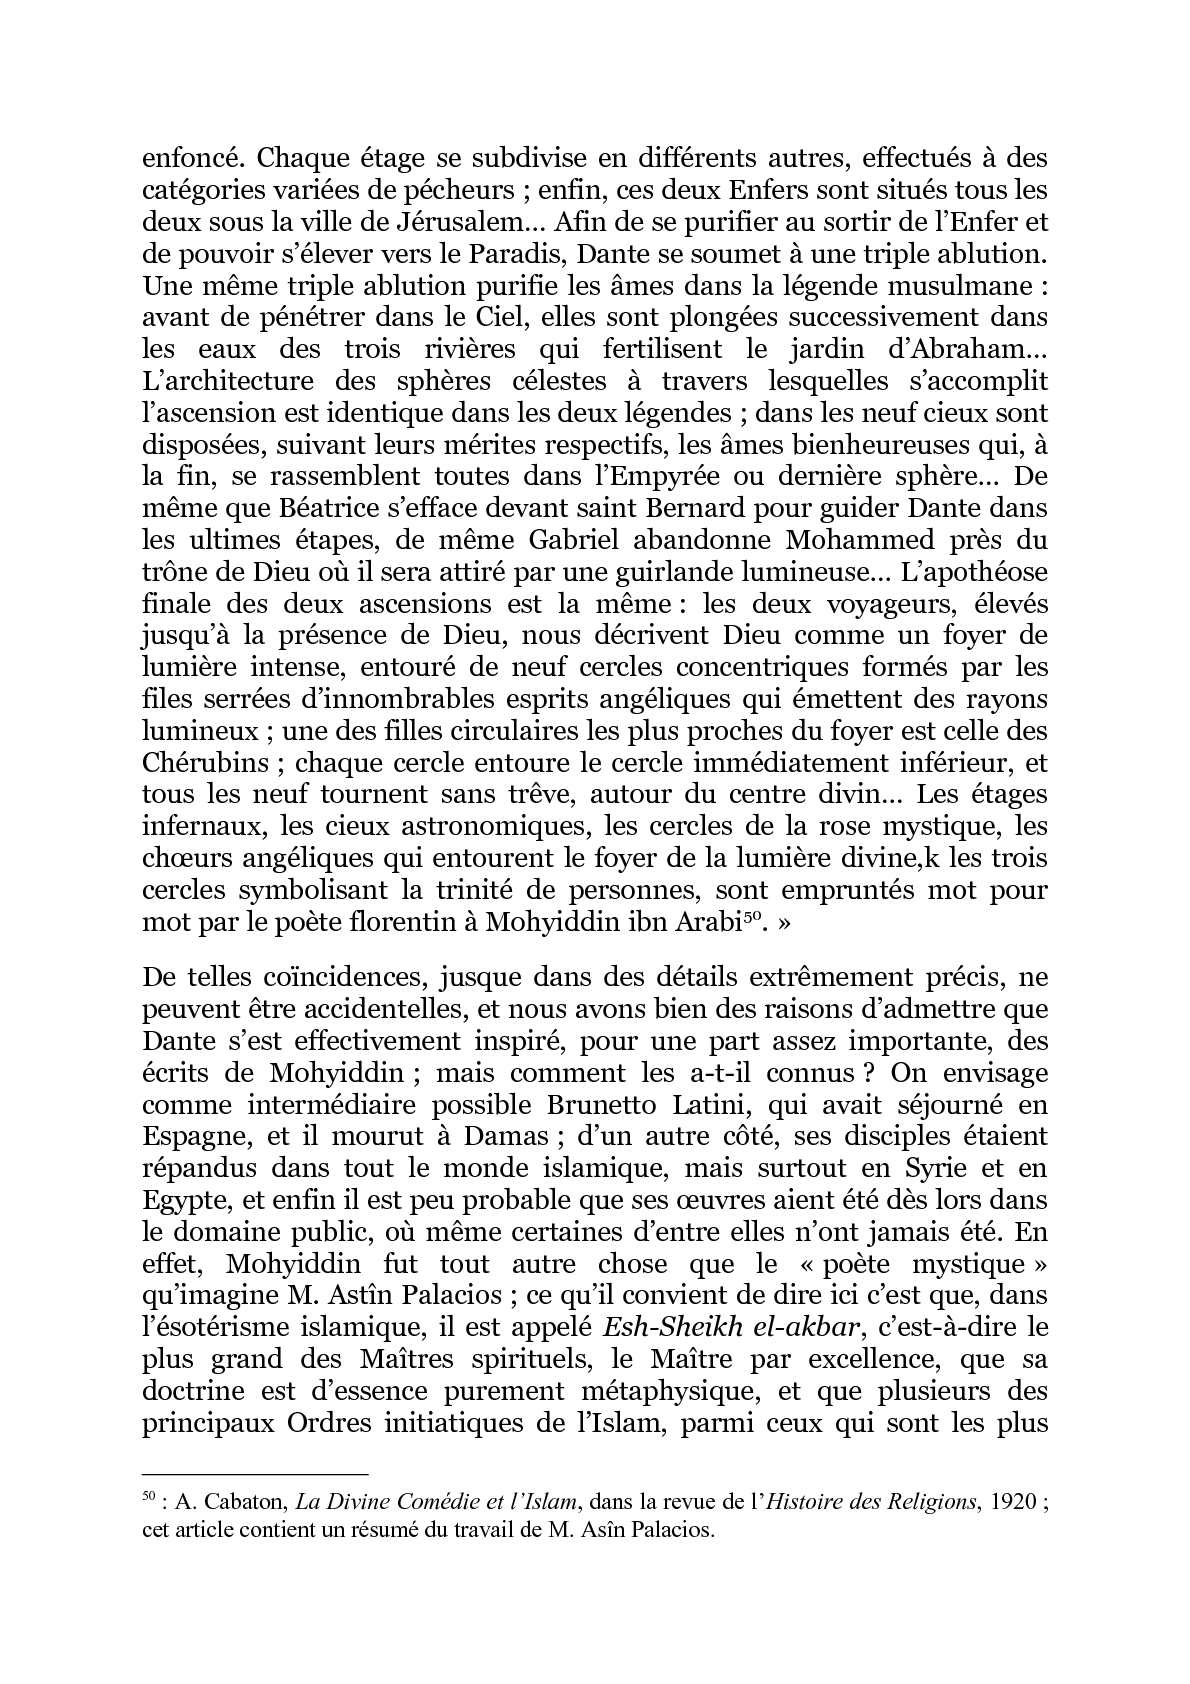 Page 24